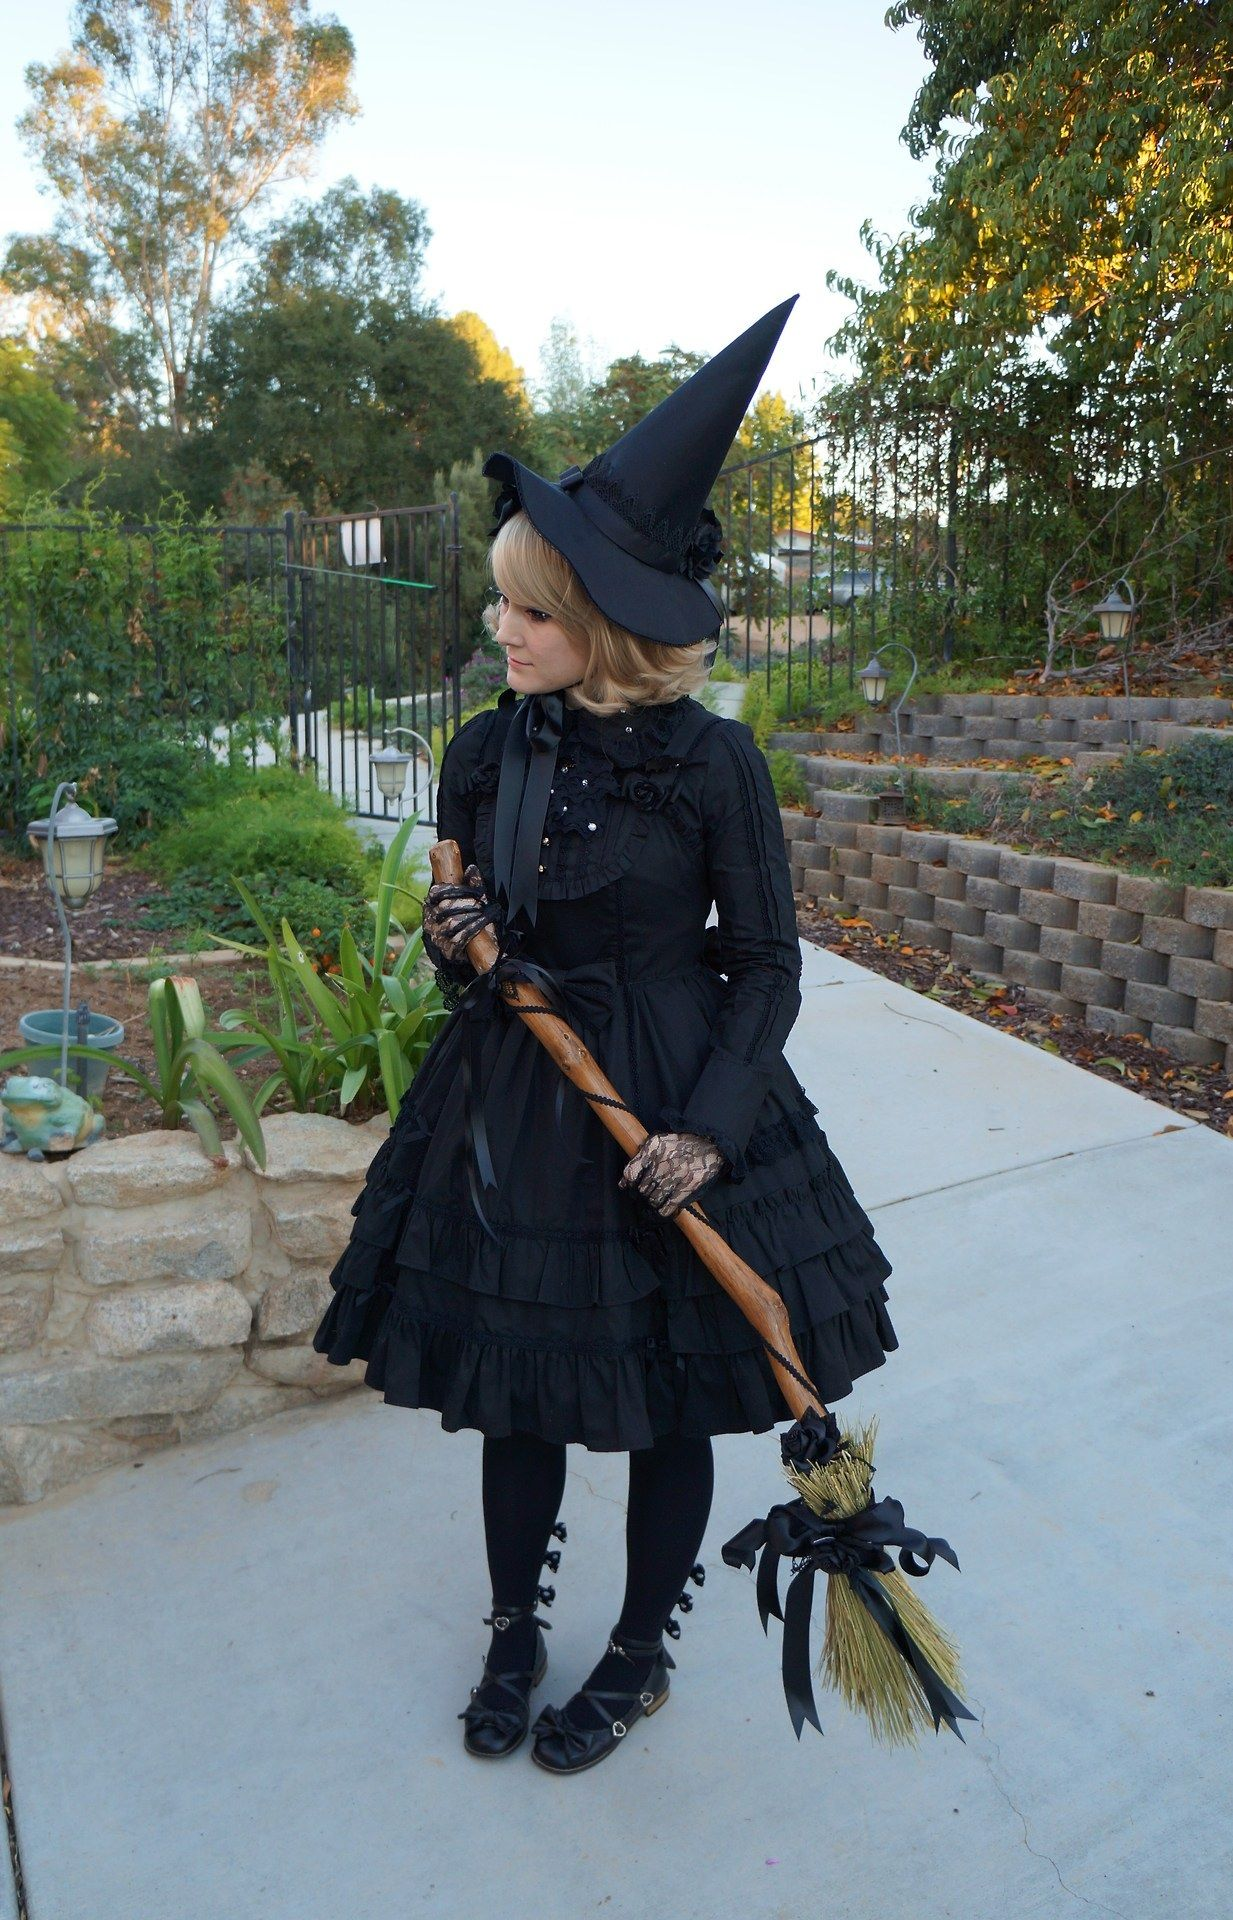 Witch coord for halloween | Outfit inspiration | Pinterest ...